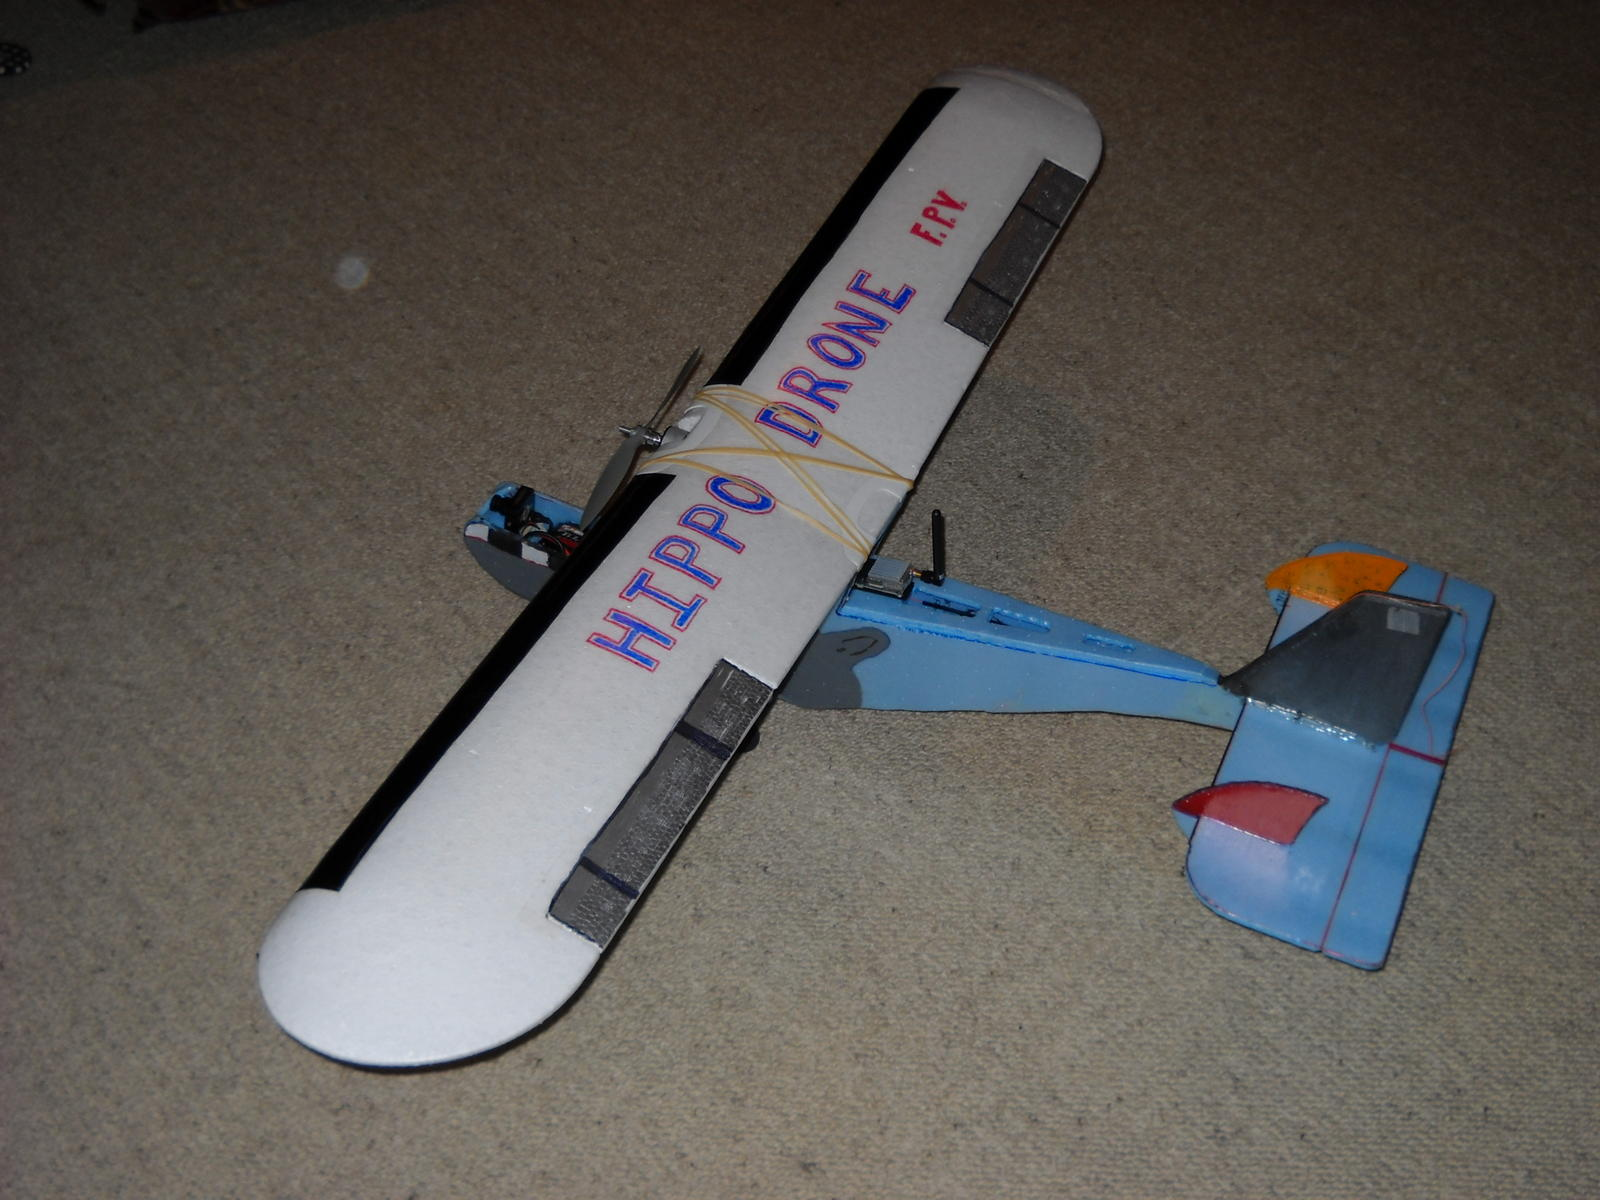 TX antenna and module just behind the wing.  Ailerons and elevator only.  Using the rudder channel to steer the front wheel.